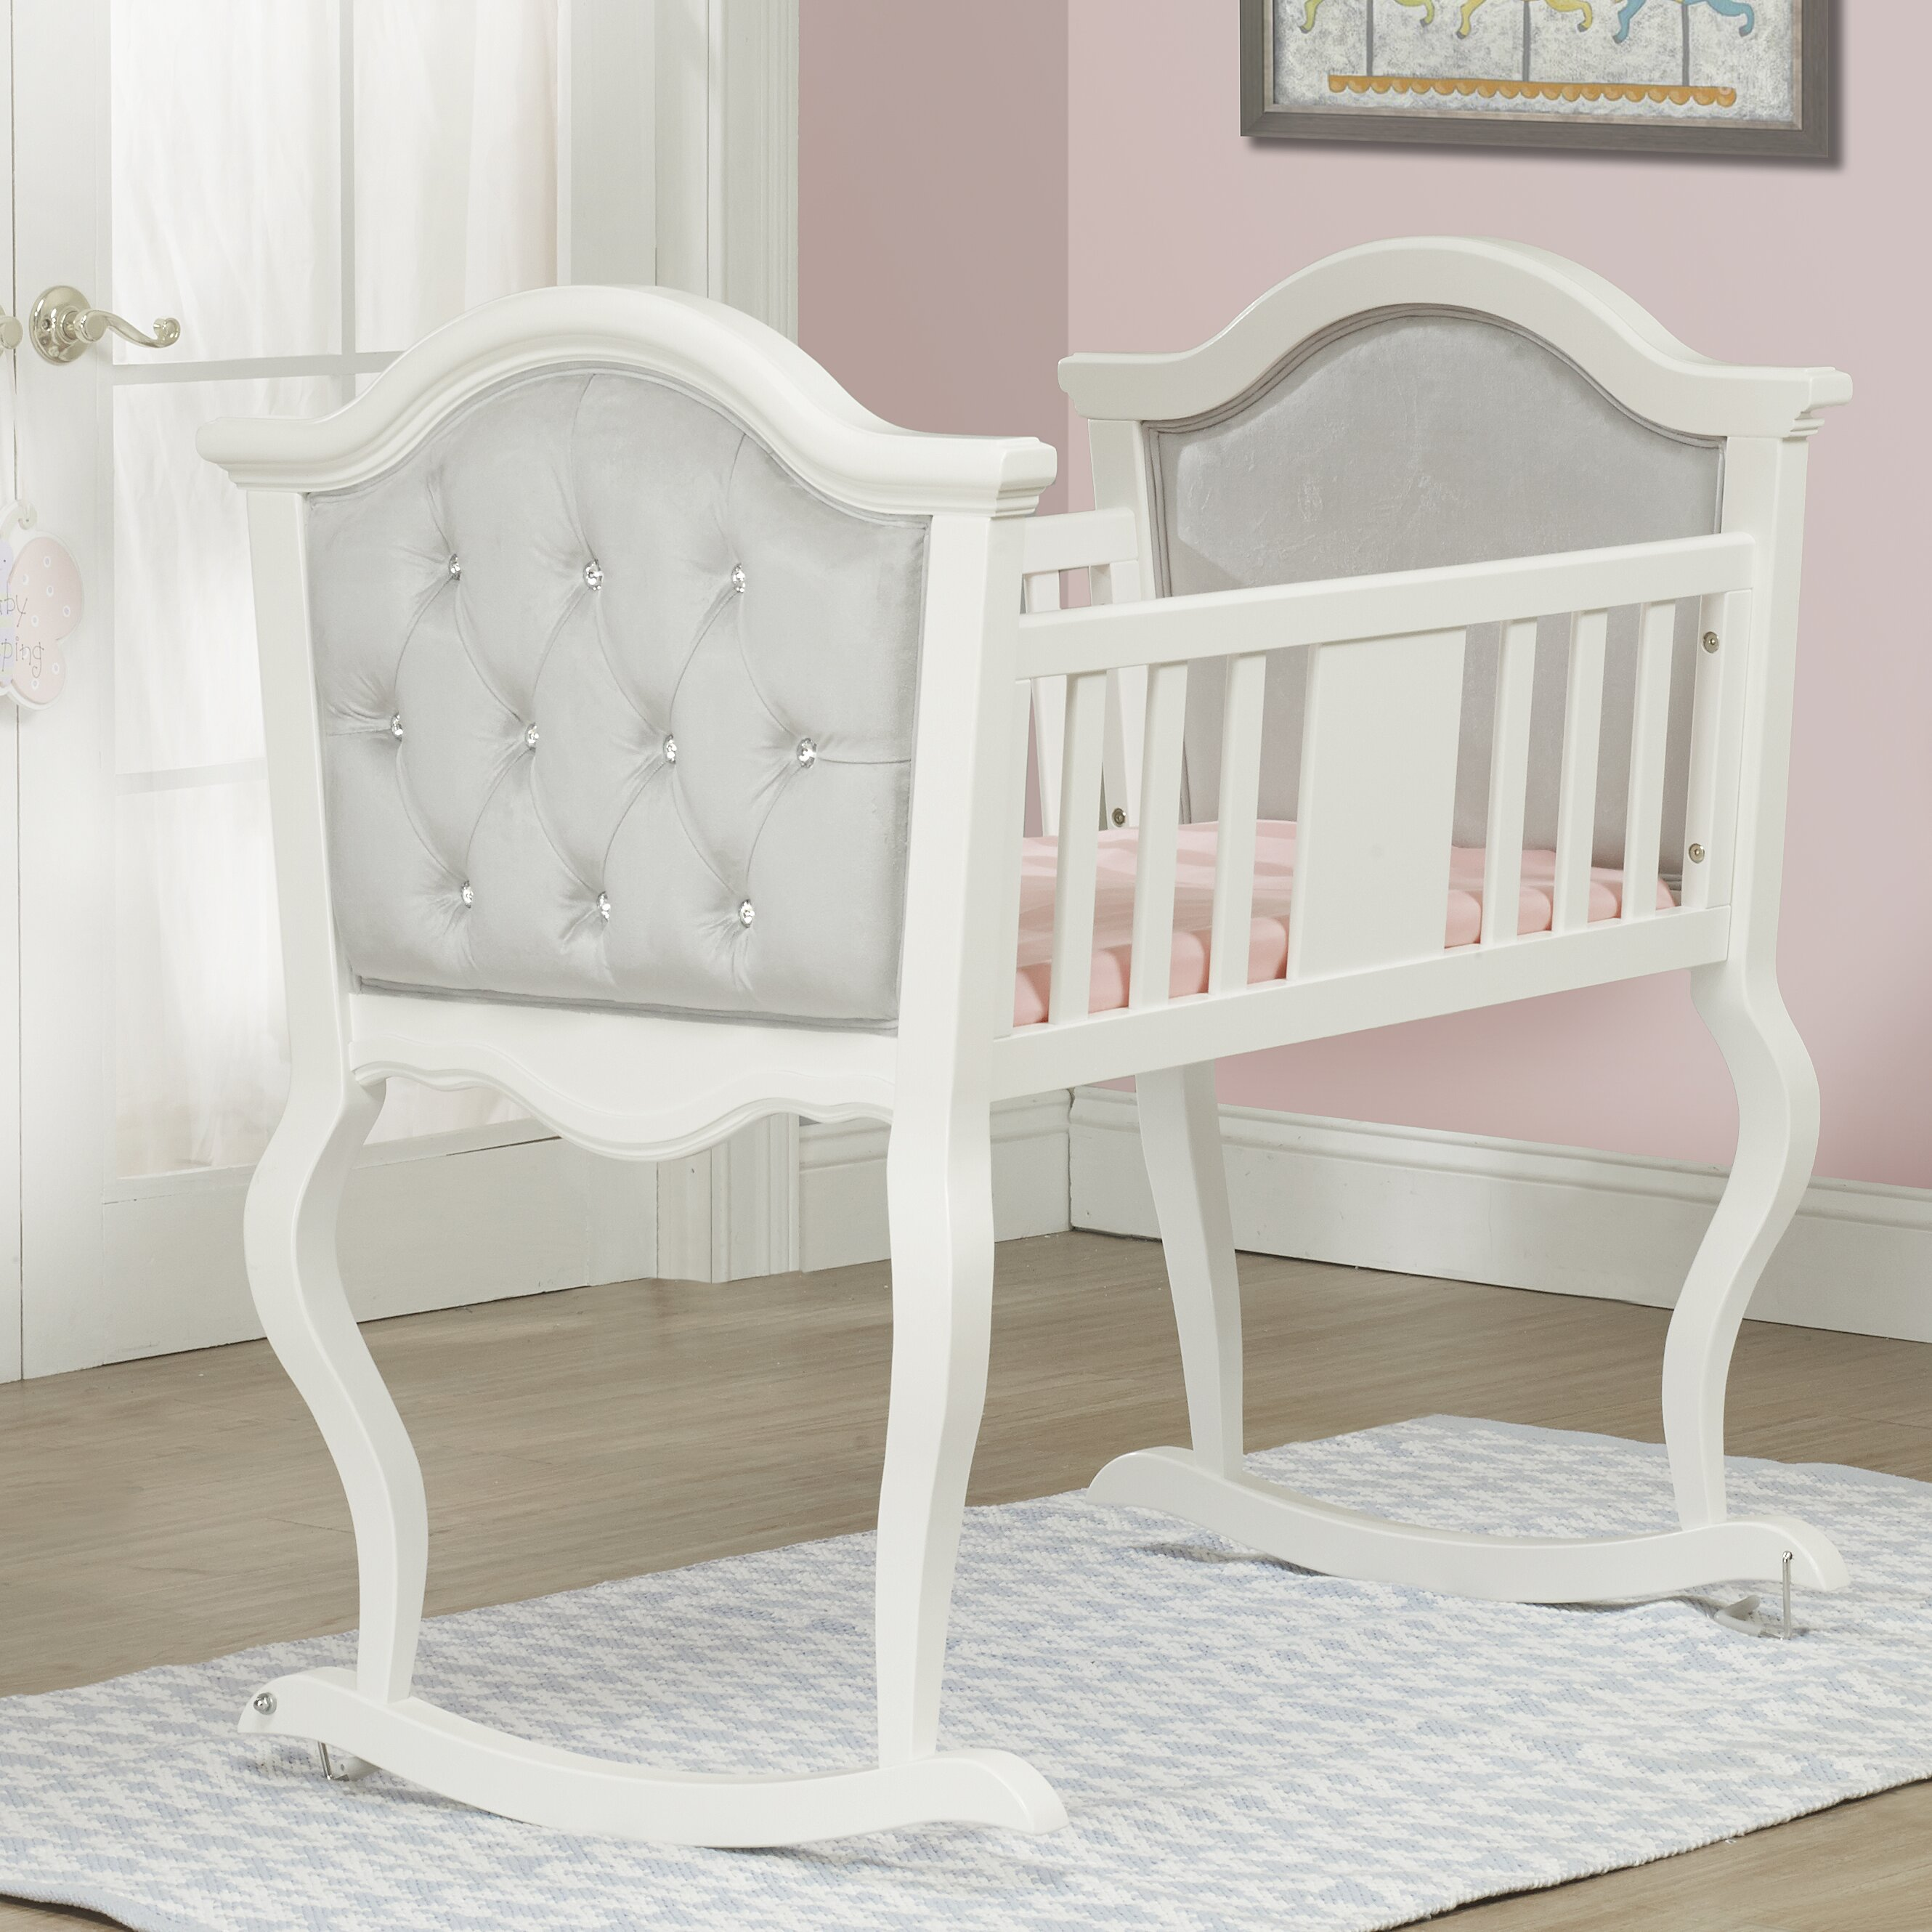 Orbelle french lola cradle reviews wayfair for Upholstery fabric for baby nursery